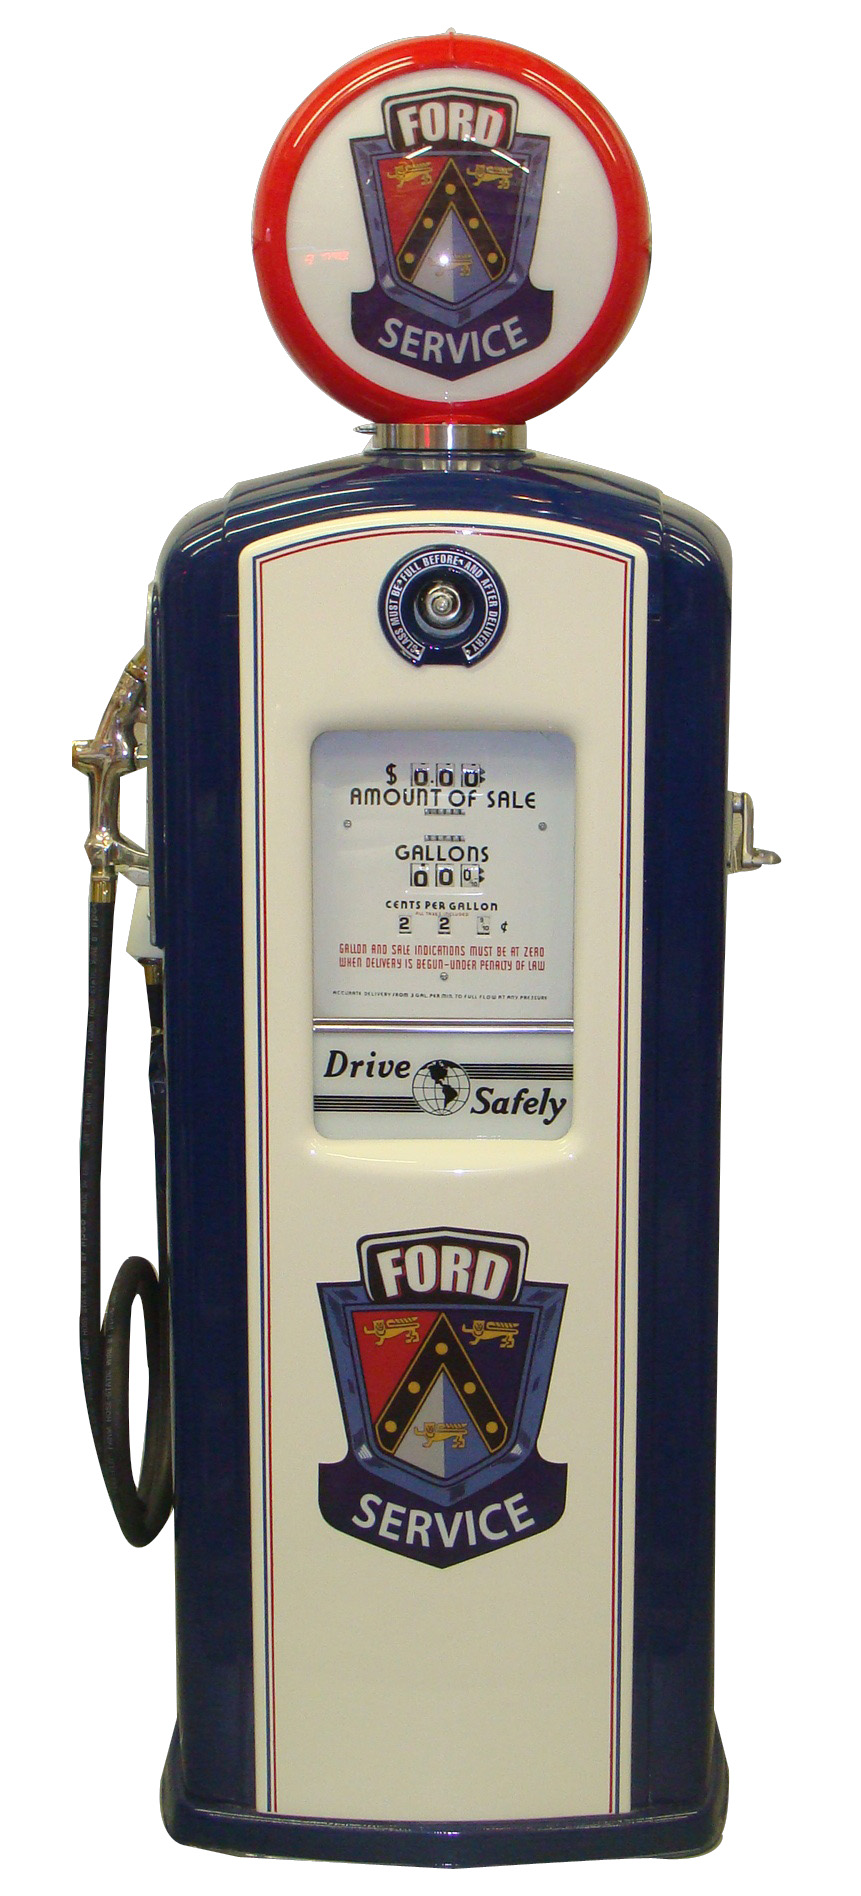 Stellar 1950s Ford Auto-dealership Bennett model #966 restored service department gas pump. - Front 3/4 - 125627